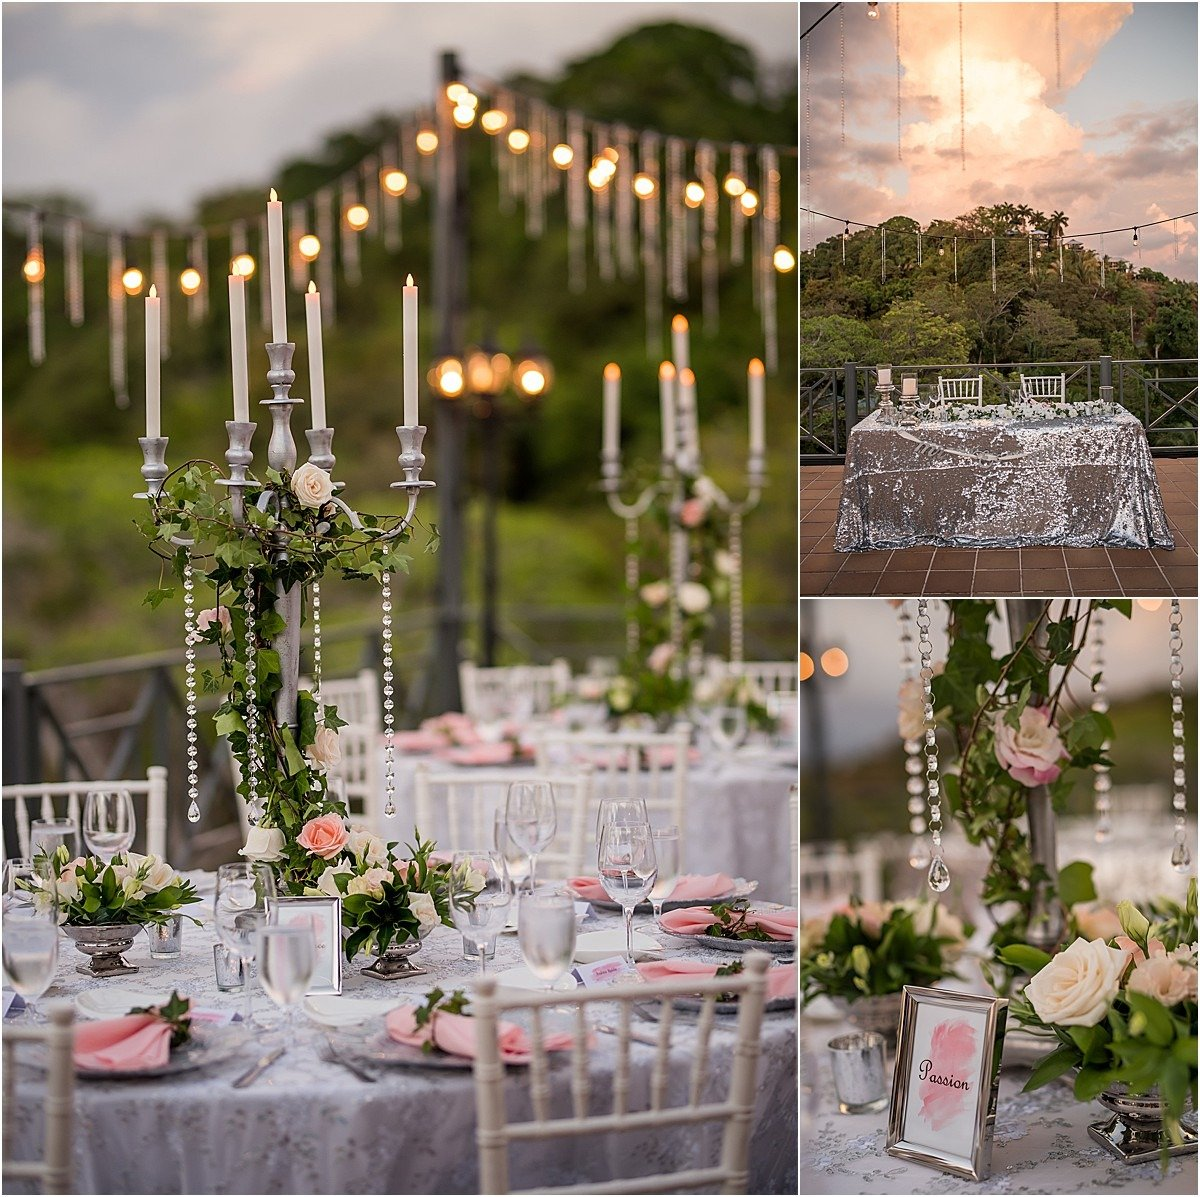 magical reception in La Mansion captured by Sylvia Guardia